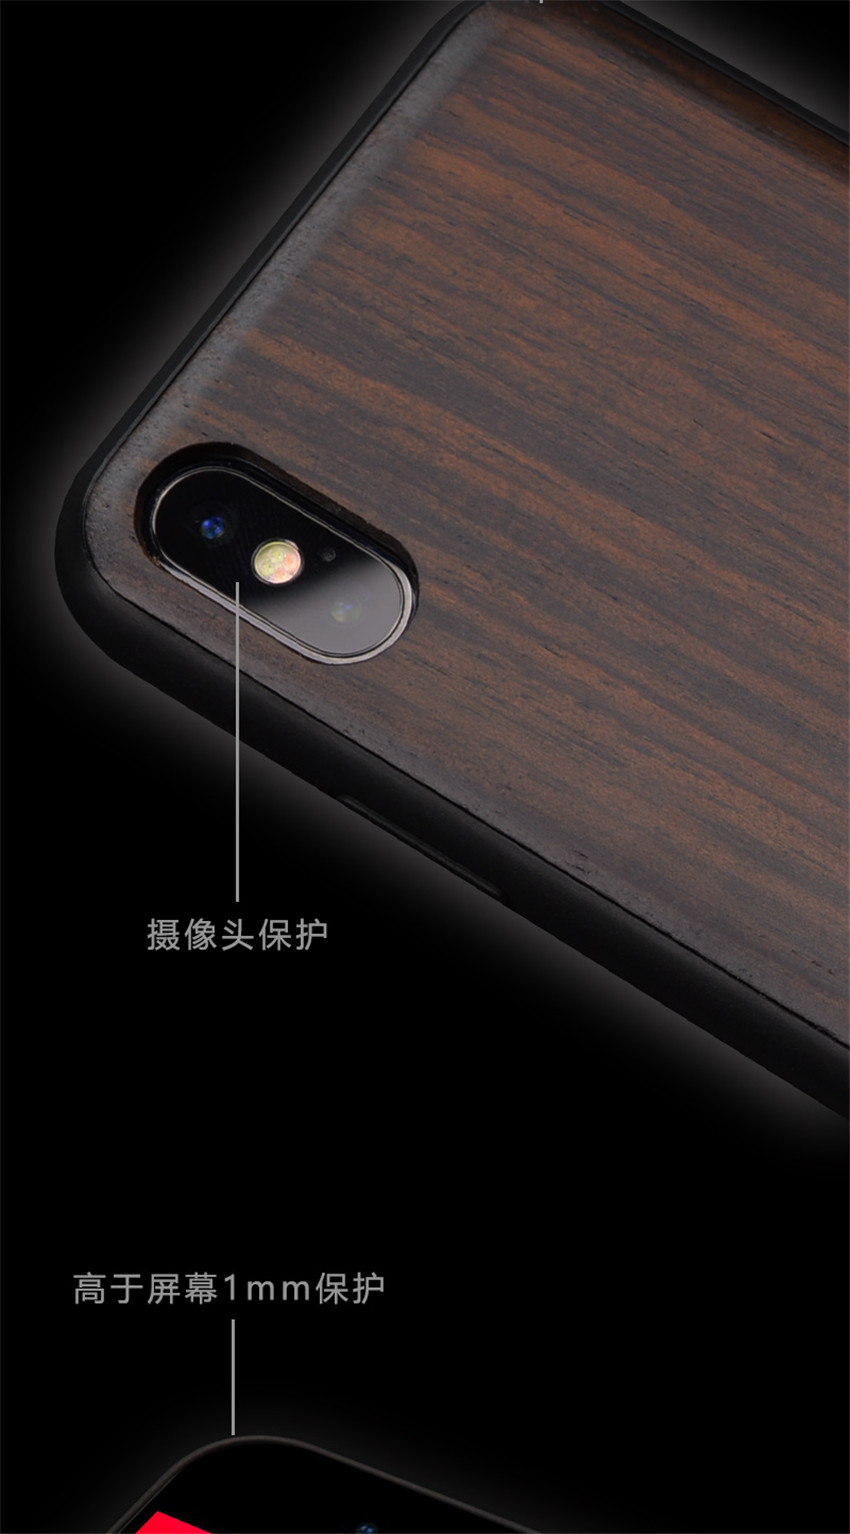 2018 New For iPhone X Case Black Ebony Wood Cover For iPhone X iPhone 10 Carved TPU Bumper Wooden Protective Case 5 (4)